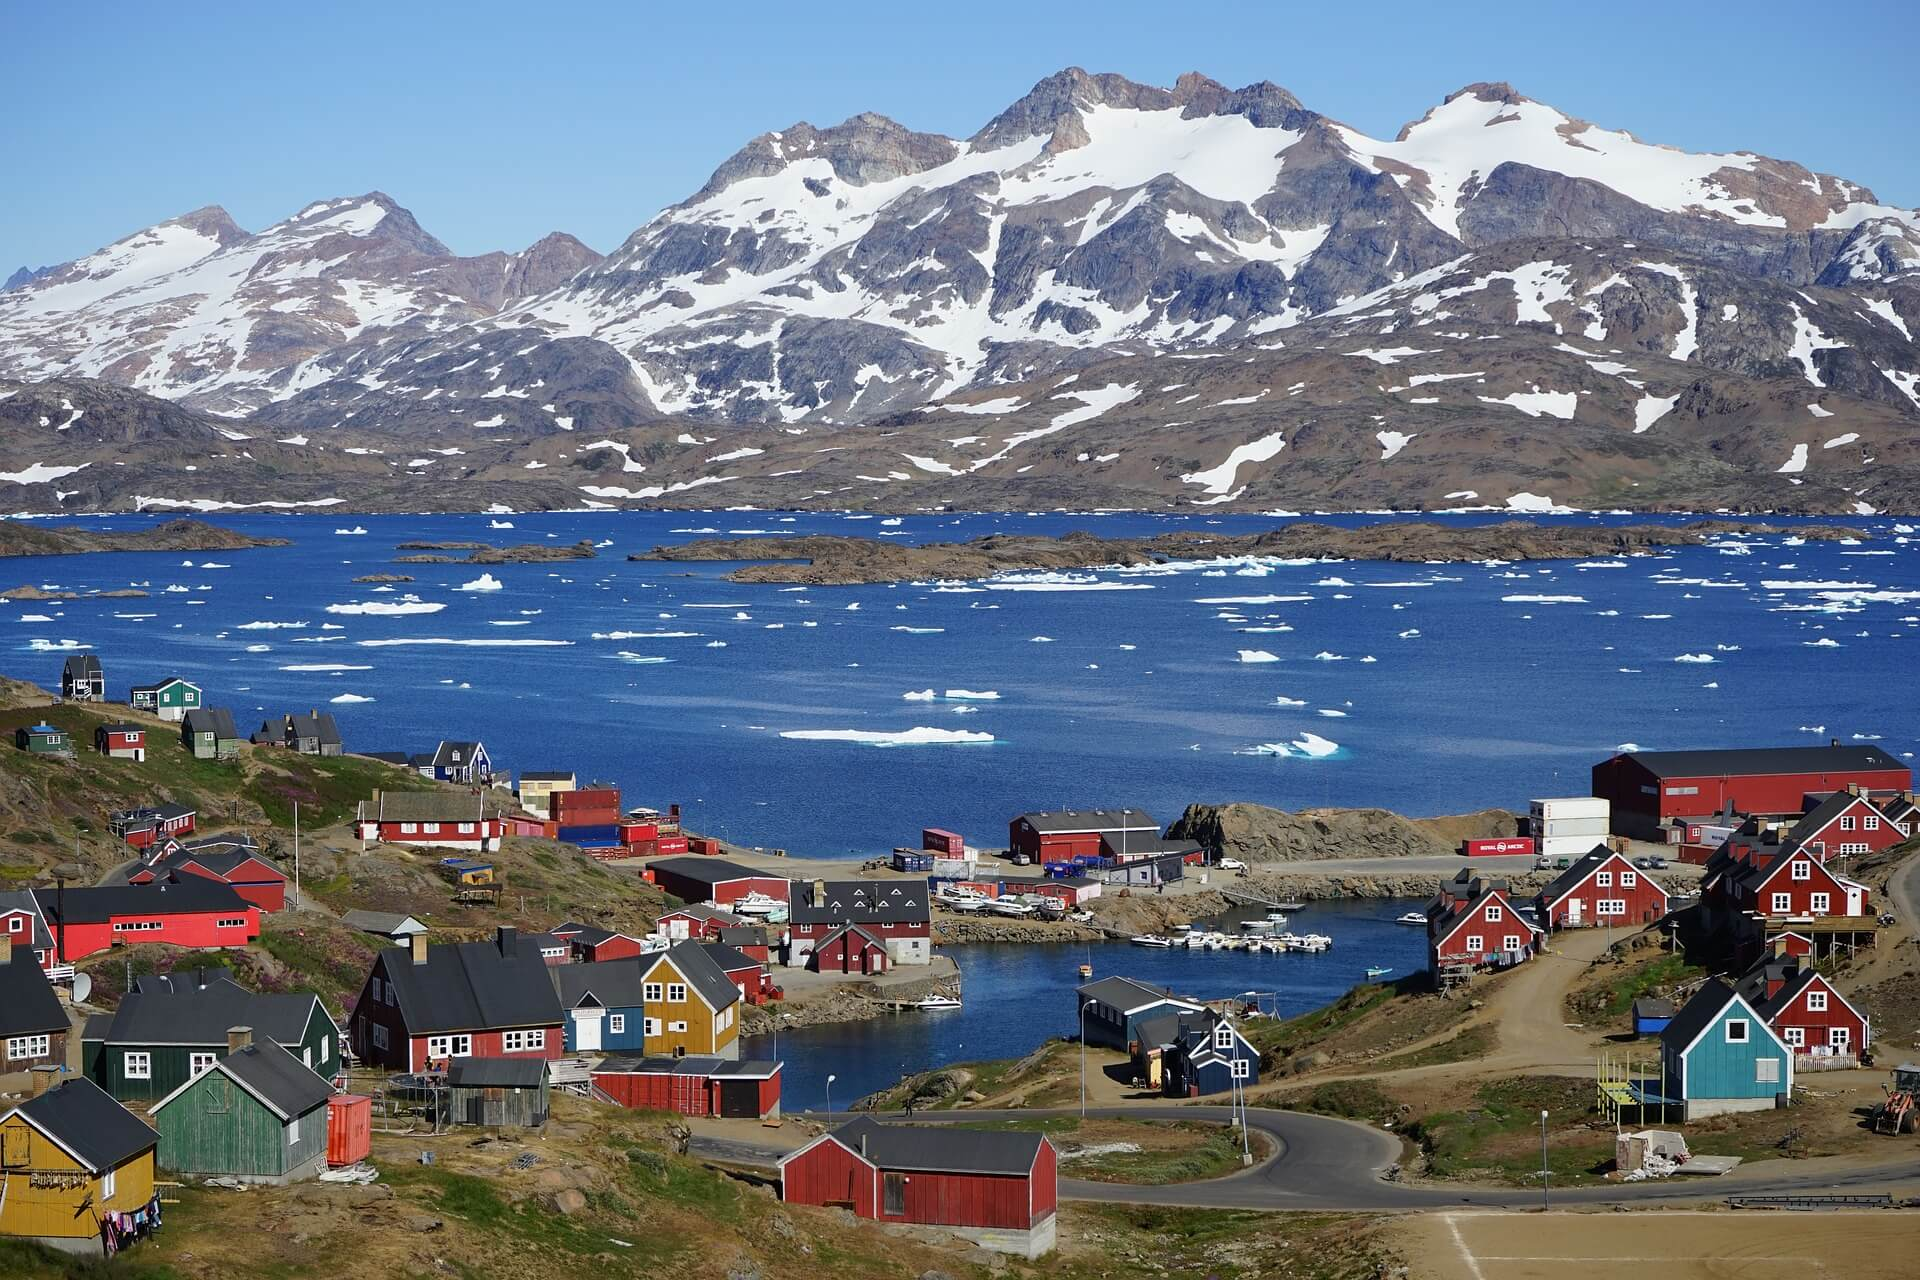 Tiny colourful villages in greenland - a bucket list experience